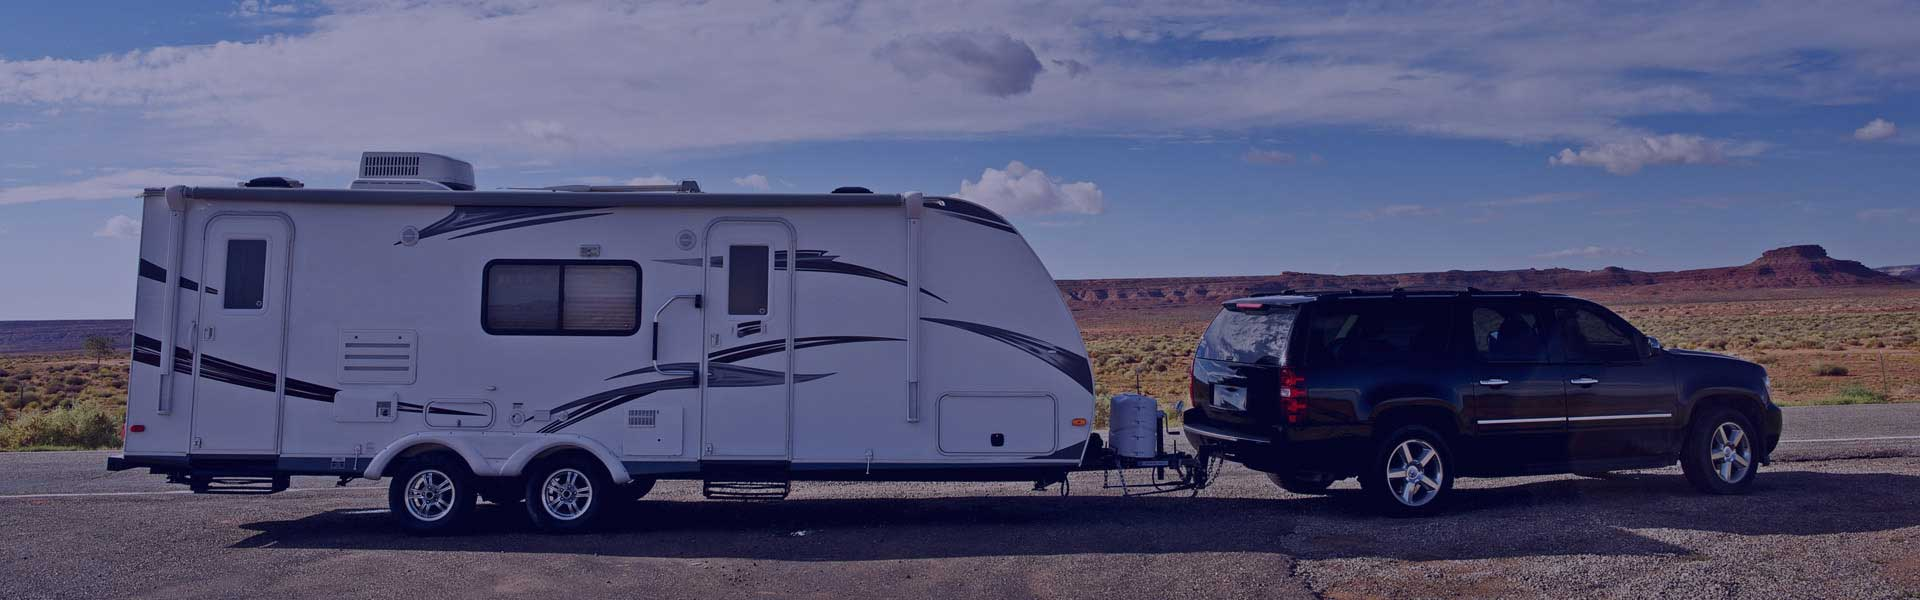 Travel ready rv